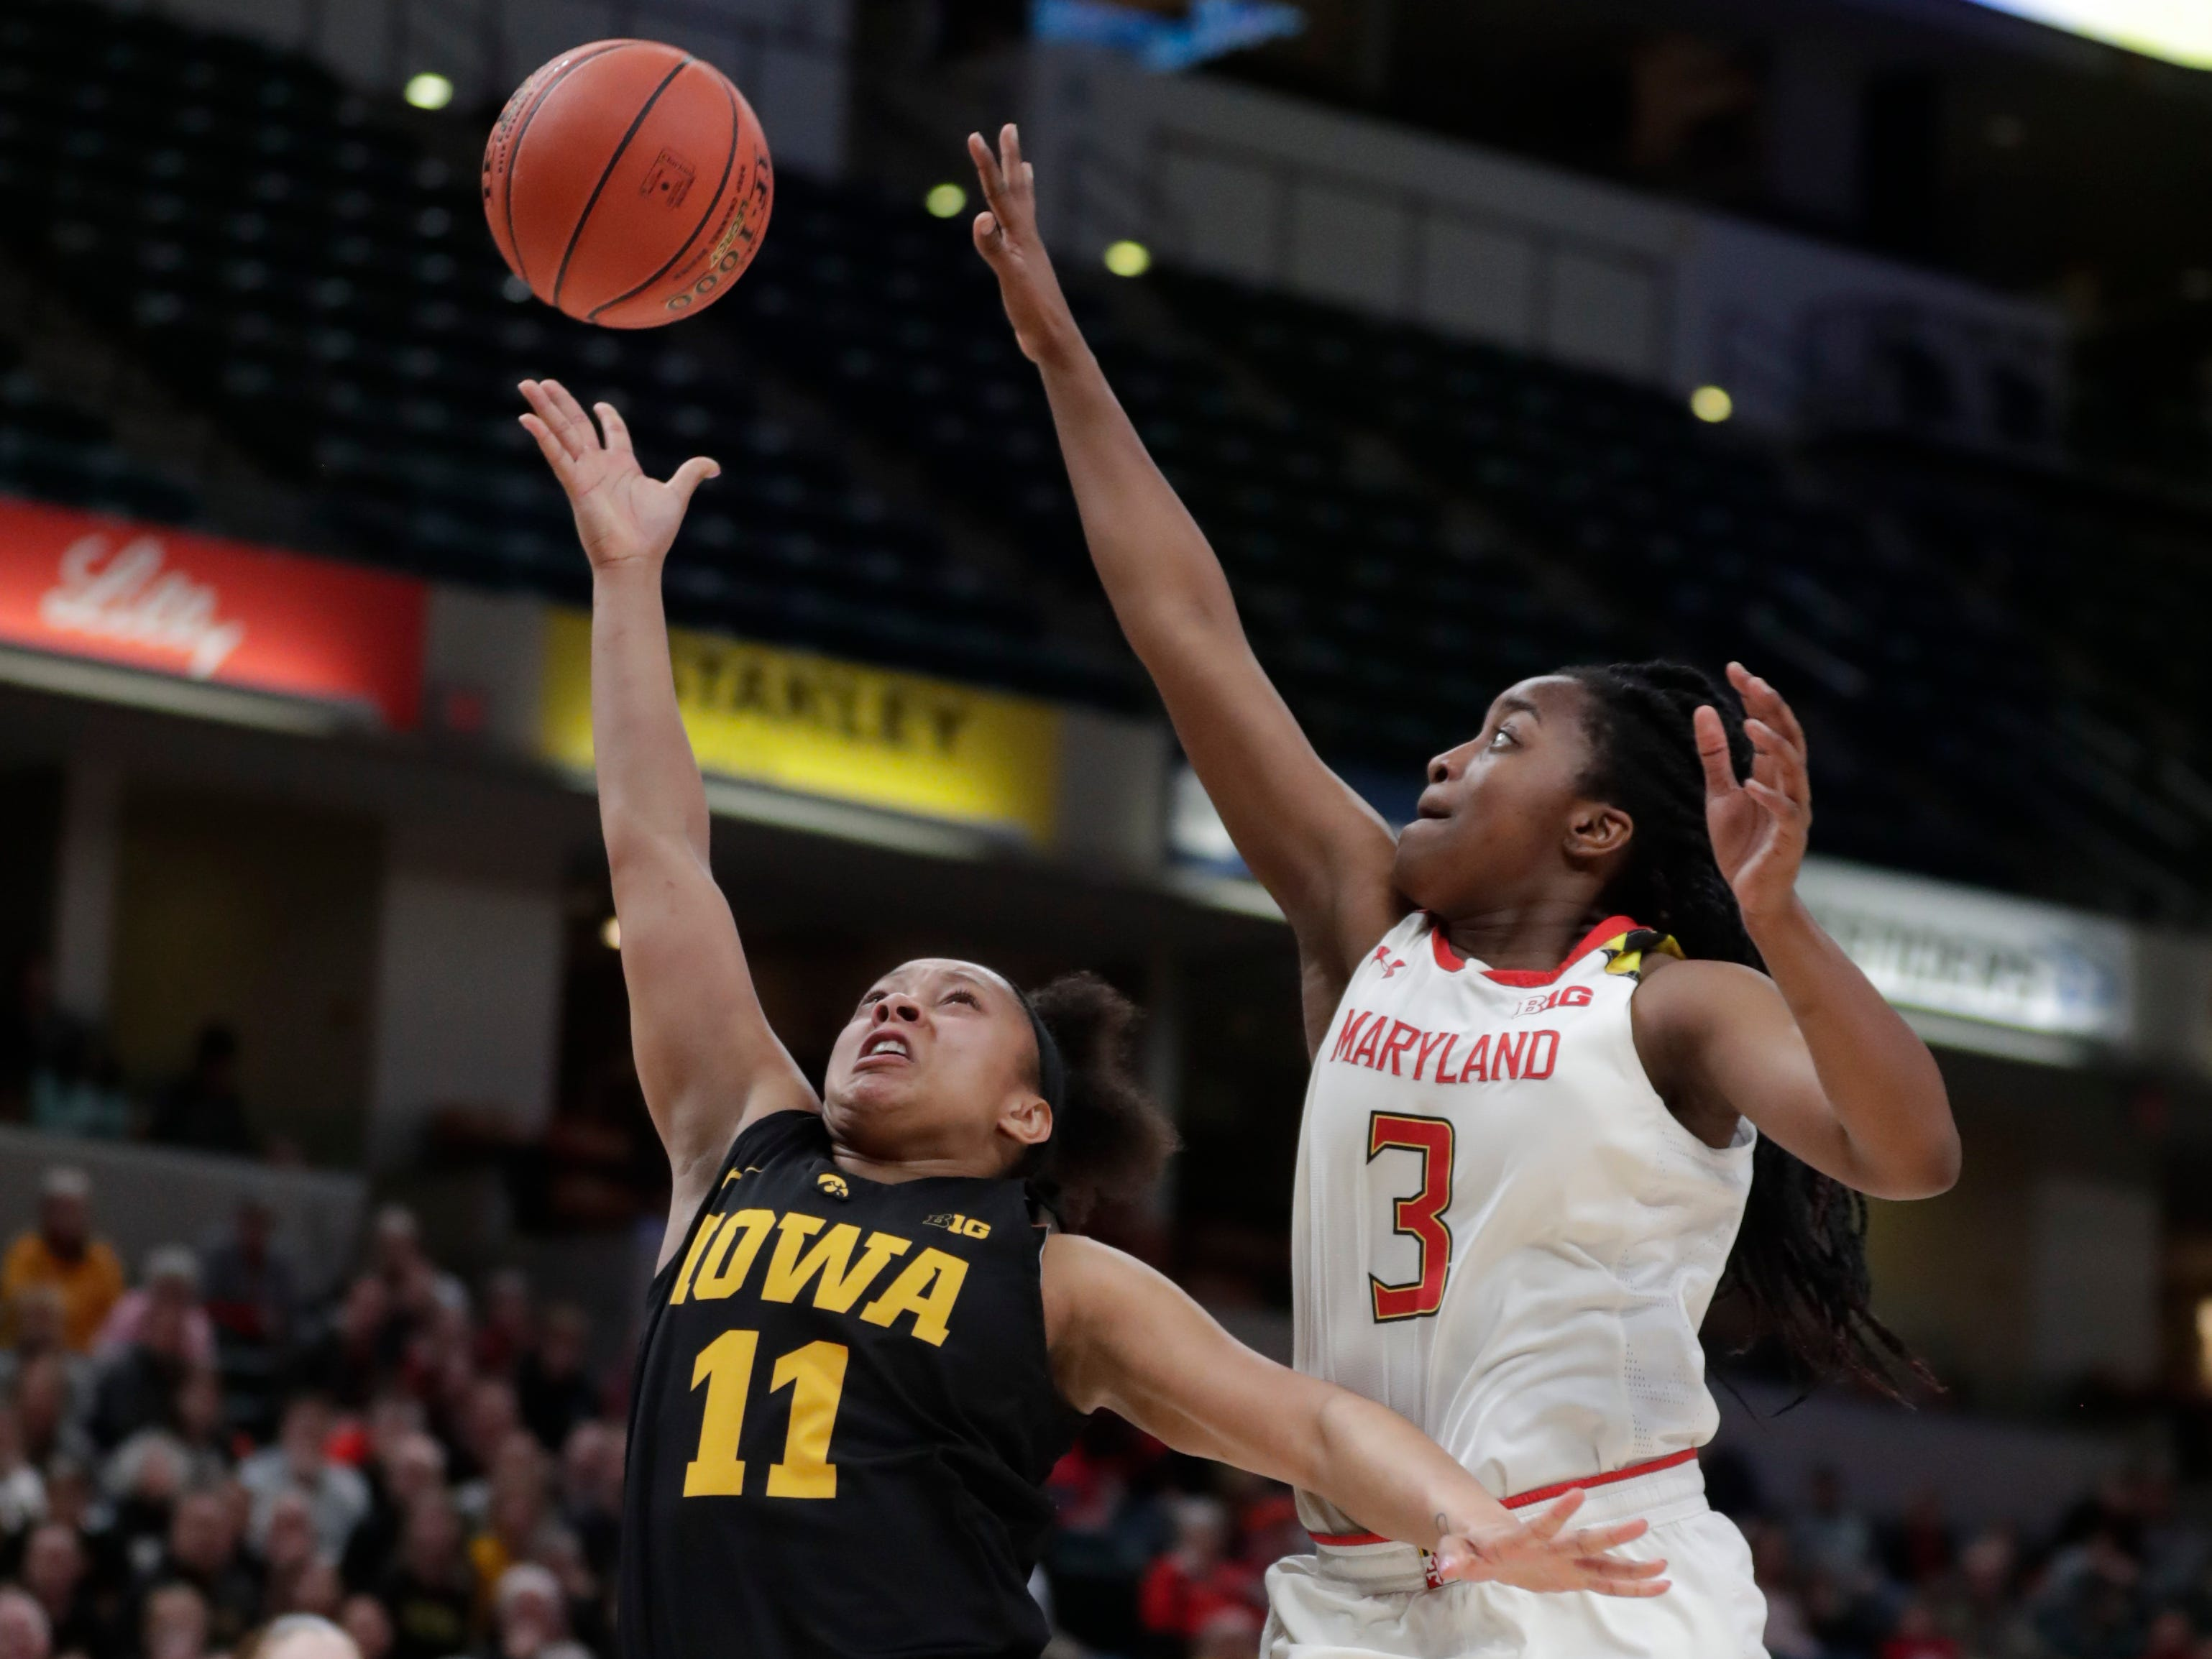 Iowa guard Tania Davis (11) shoots in front of Maryland guard Channise Lewis (3) in the second half of an NCAA college basketball championship game at the Big Ten Conference tournament in Indianapolis, Sunday, March 10, 2019. Iowa defeated Maryland 90-76.